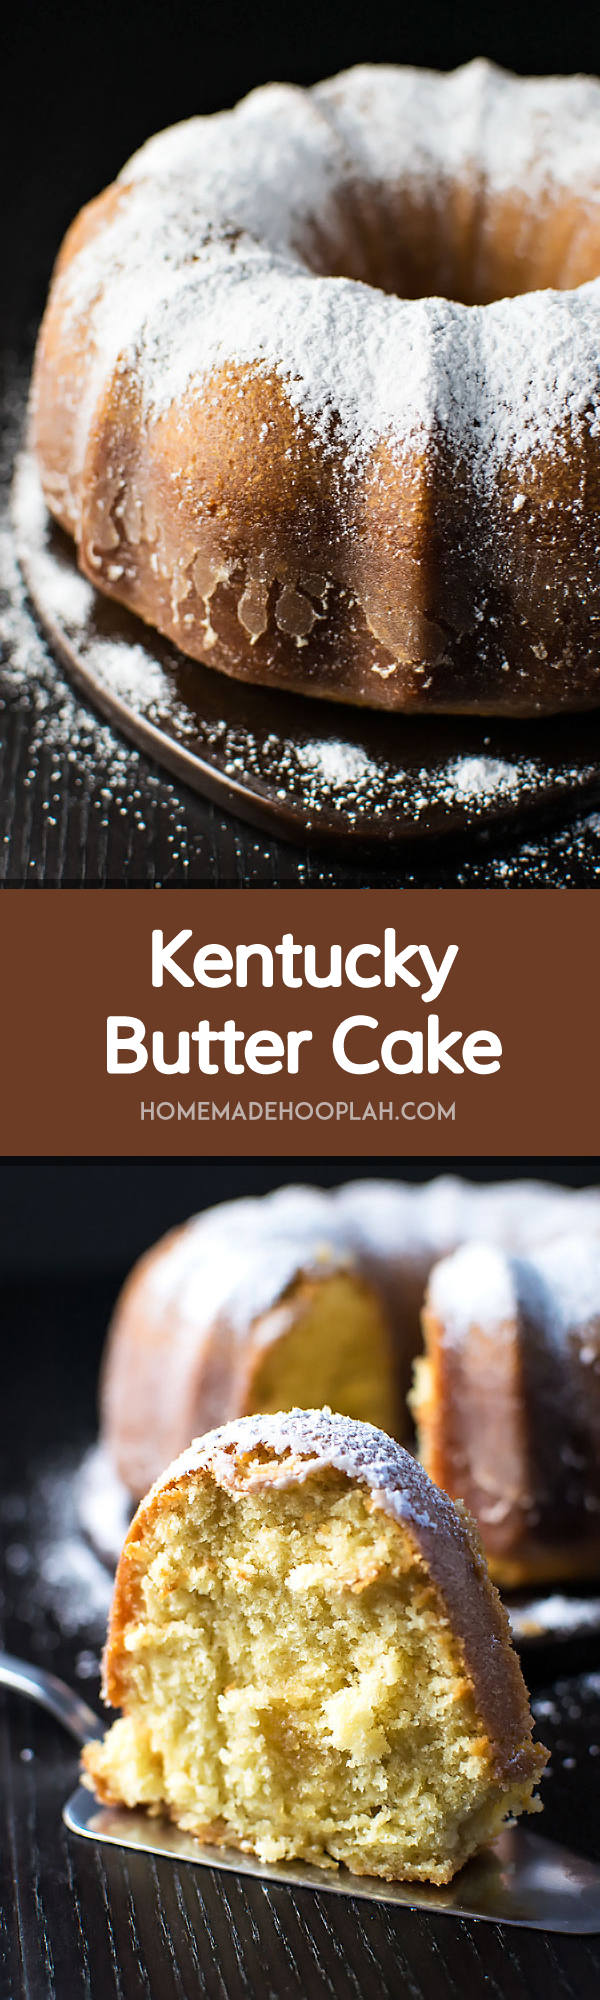 Kentucky Butter Cake! Extra moist and crumbly pound cake covered in a crispy sugar coating (and no alcohol included, so family friendly.) Fair warning, this cake is addictive! | HomemadeHooplah.com